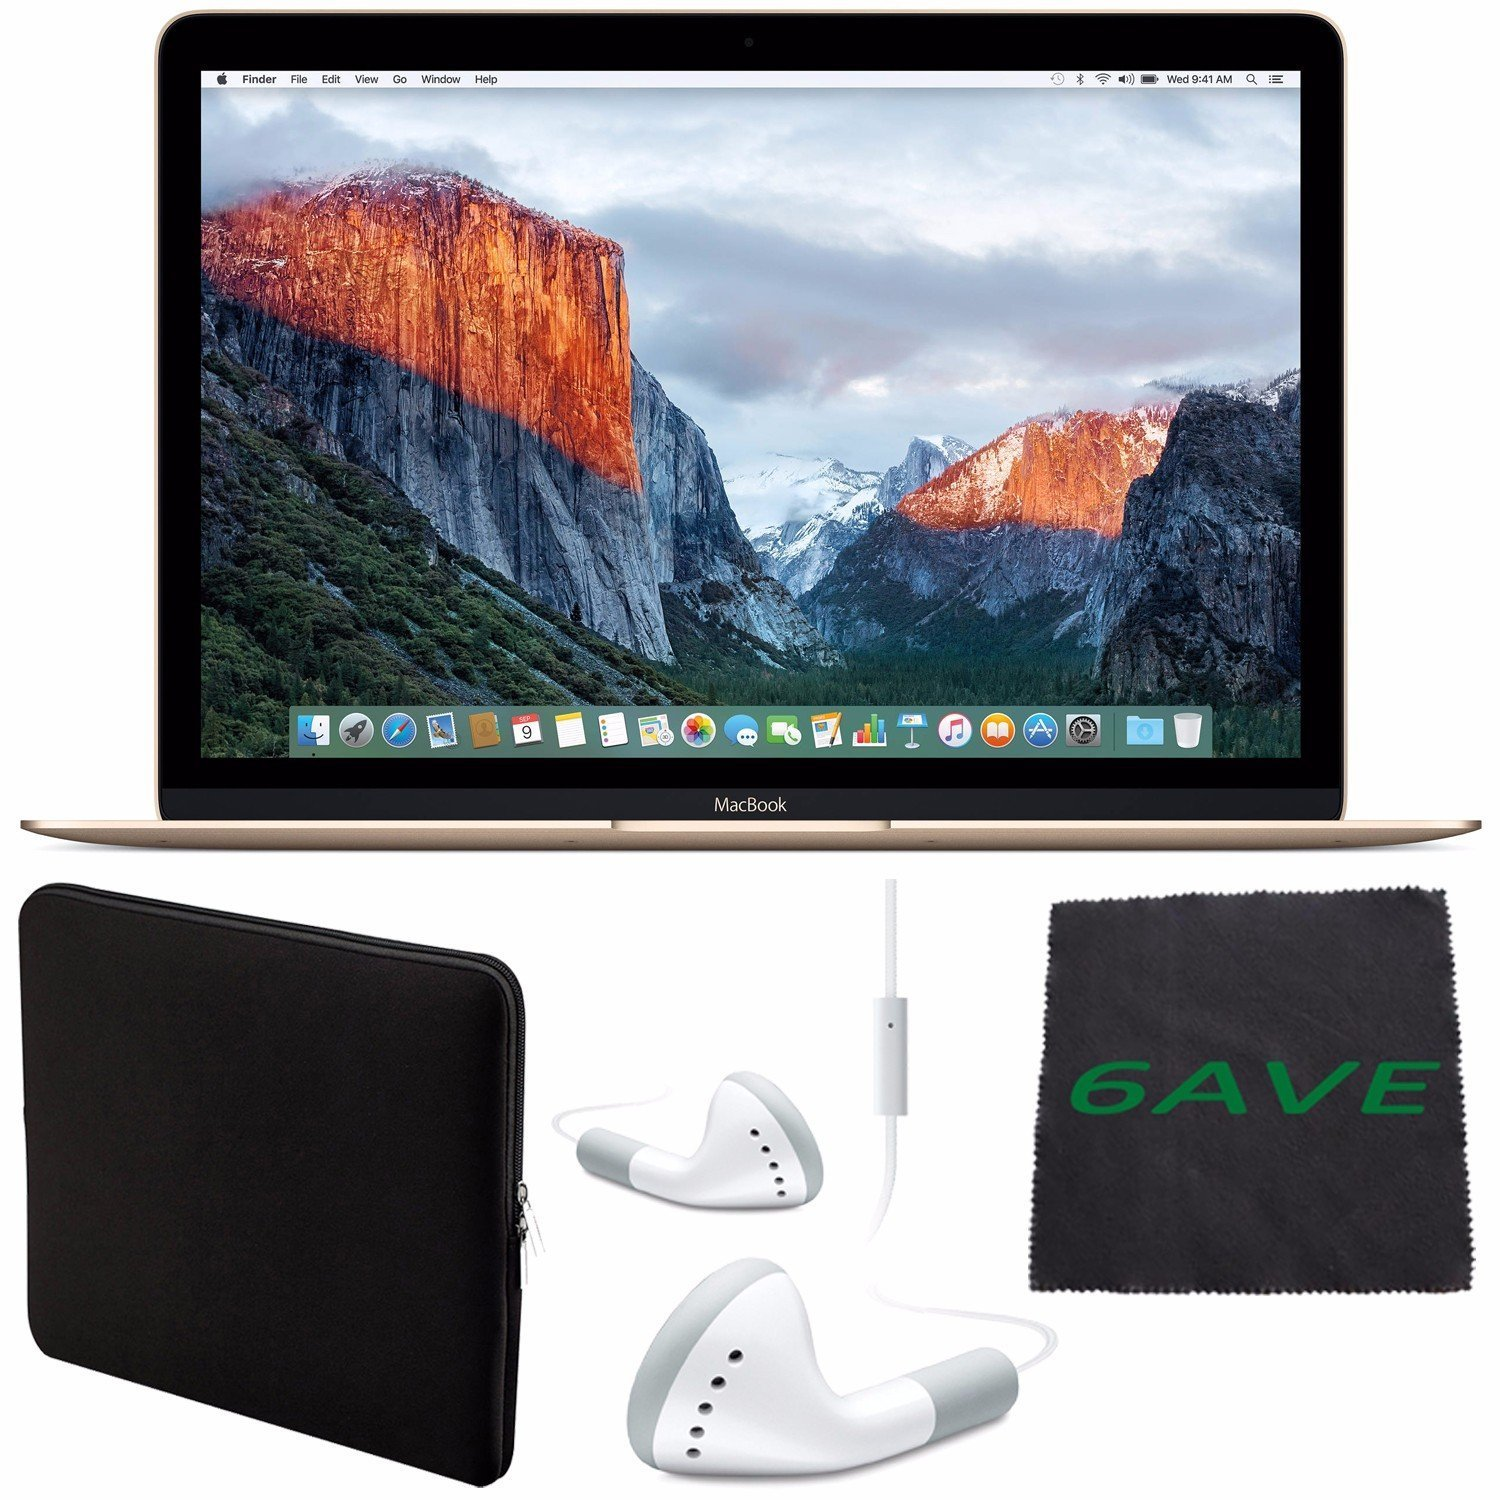 """6Ave Apple 12"""" MacBook 512GB (Early 2016 Gold) #MLHF2LL/A + White Wired Earbuds Headphones + Padded Case For Macbook + Fibercloth Bundle"""